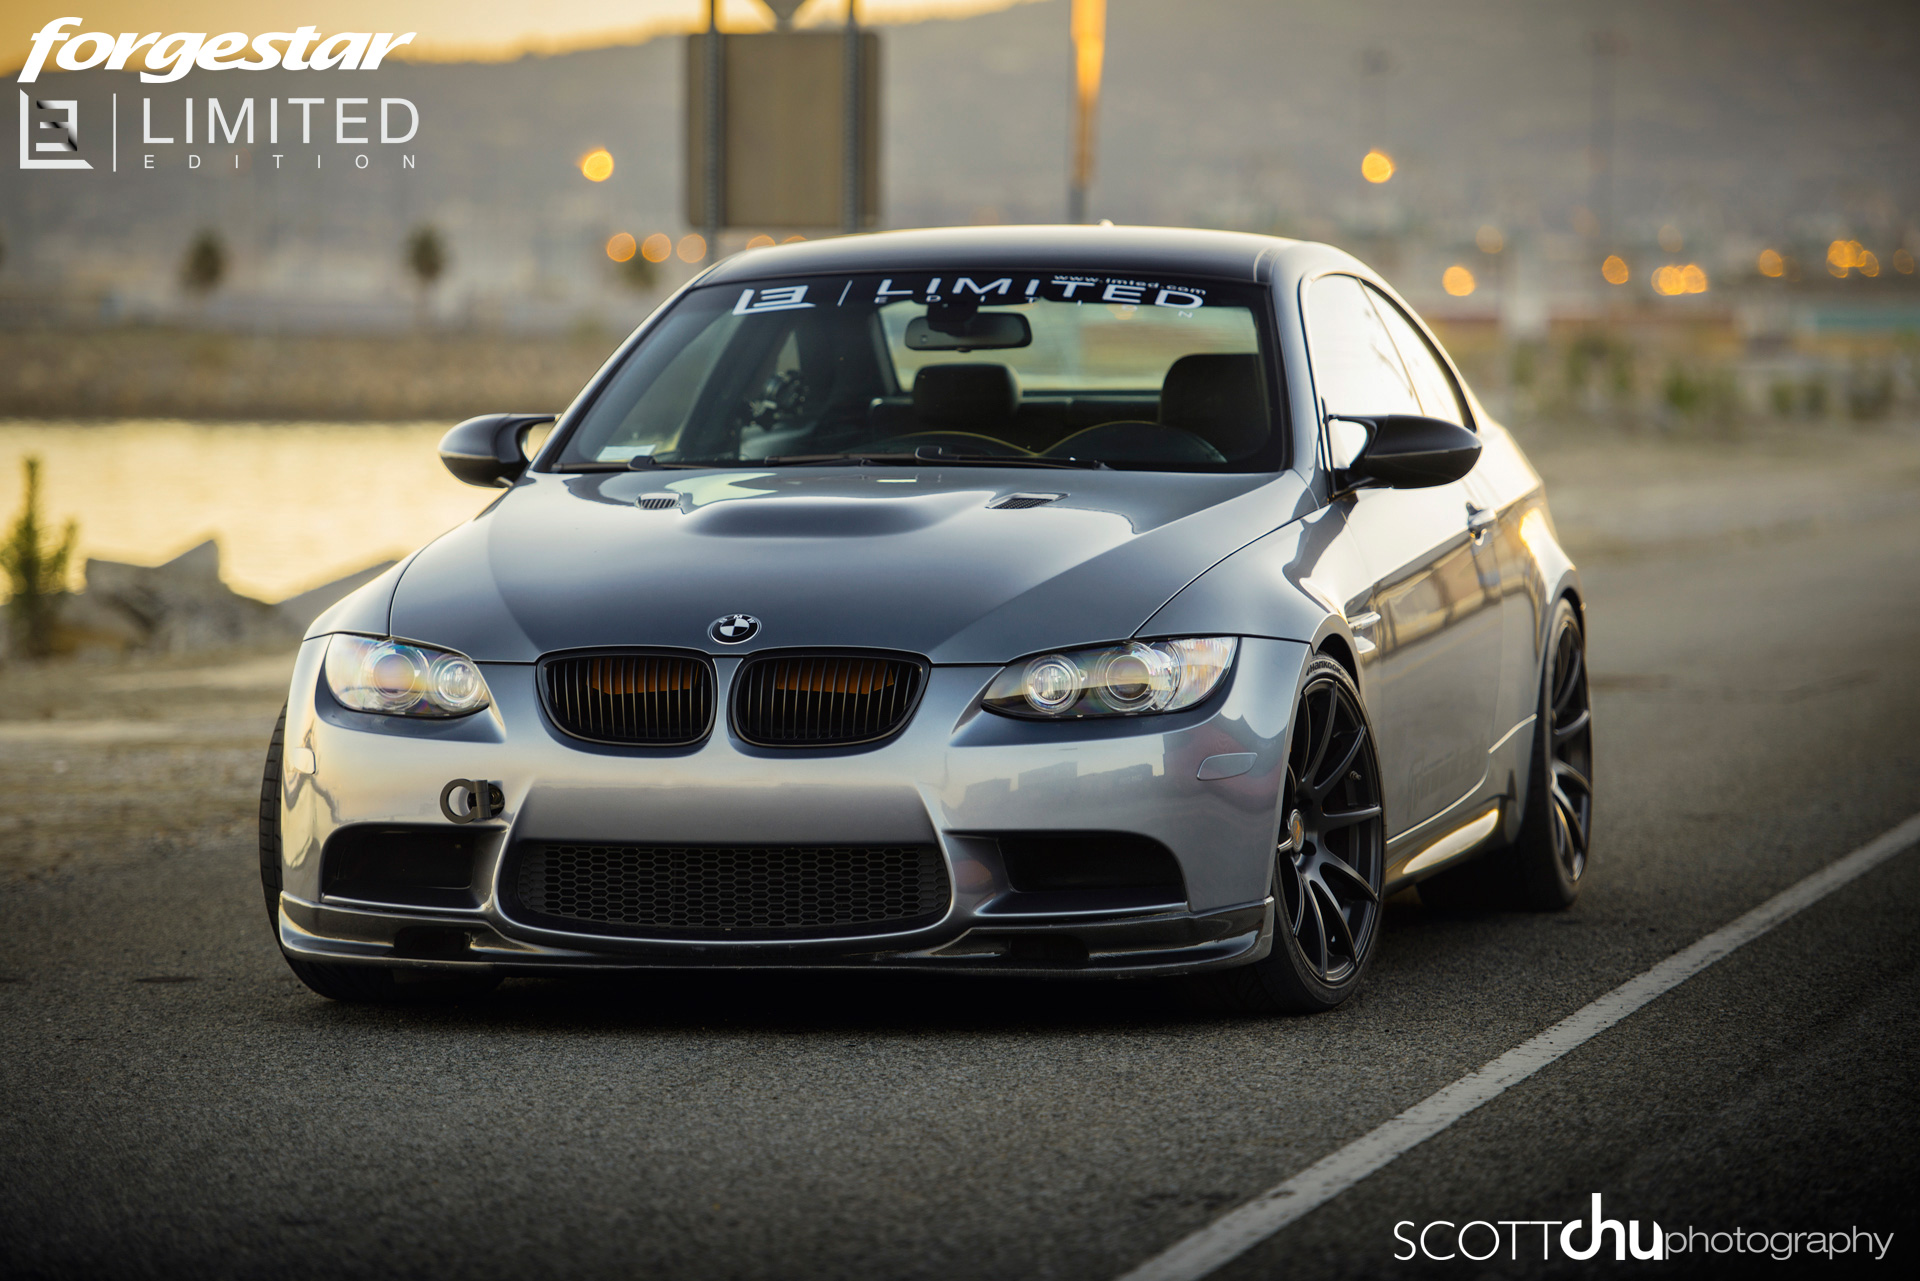 Bmw E46 M3 Front Bumper Innotech Limited Edition E92 M3 on Forgestar Wheels Sounds Great ...